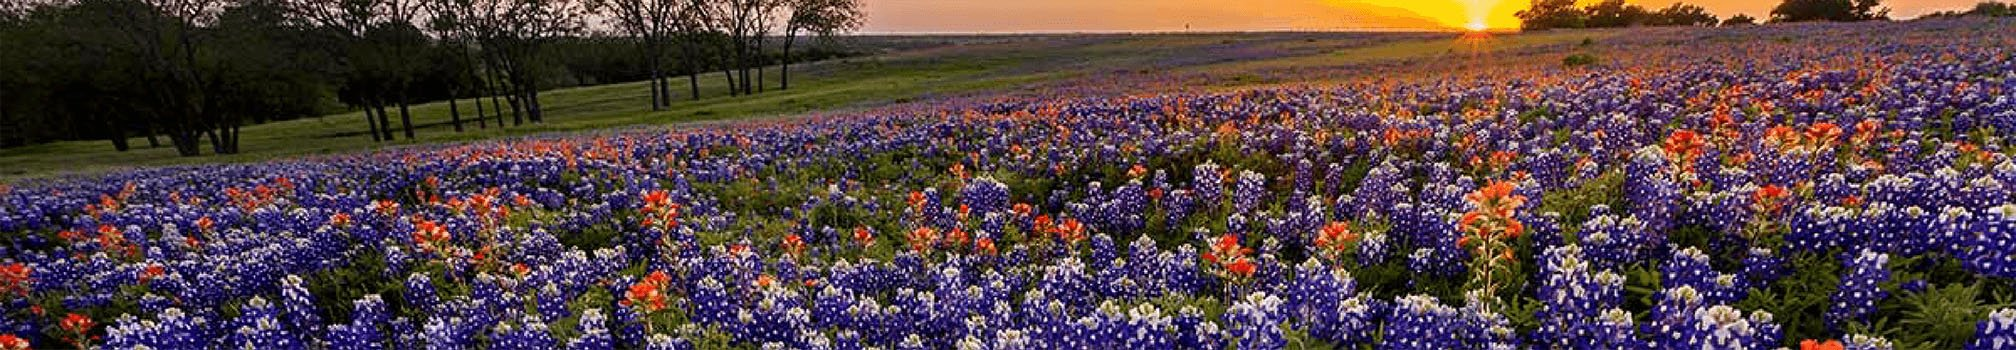 texas-bluebonnets-sunrise